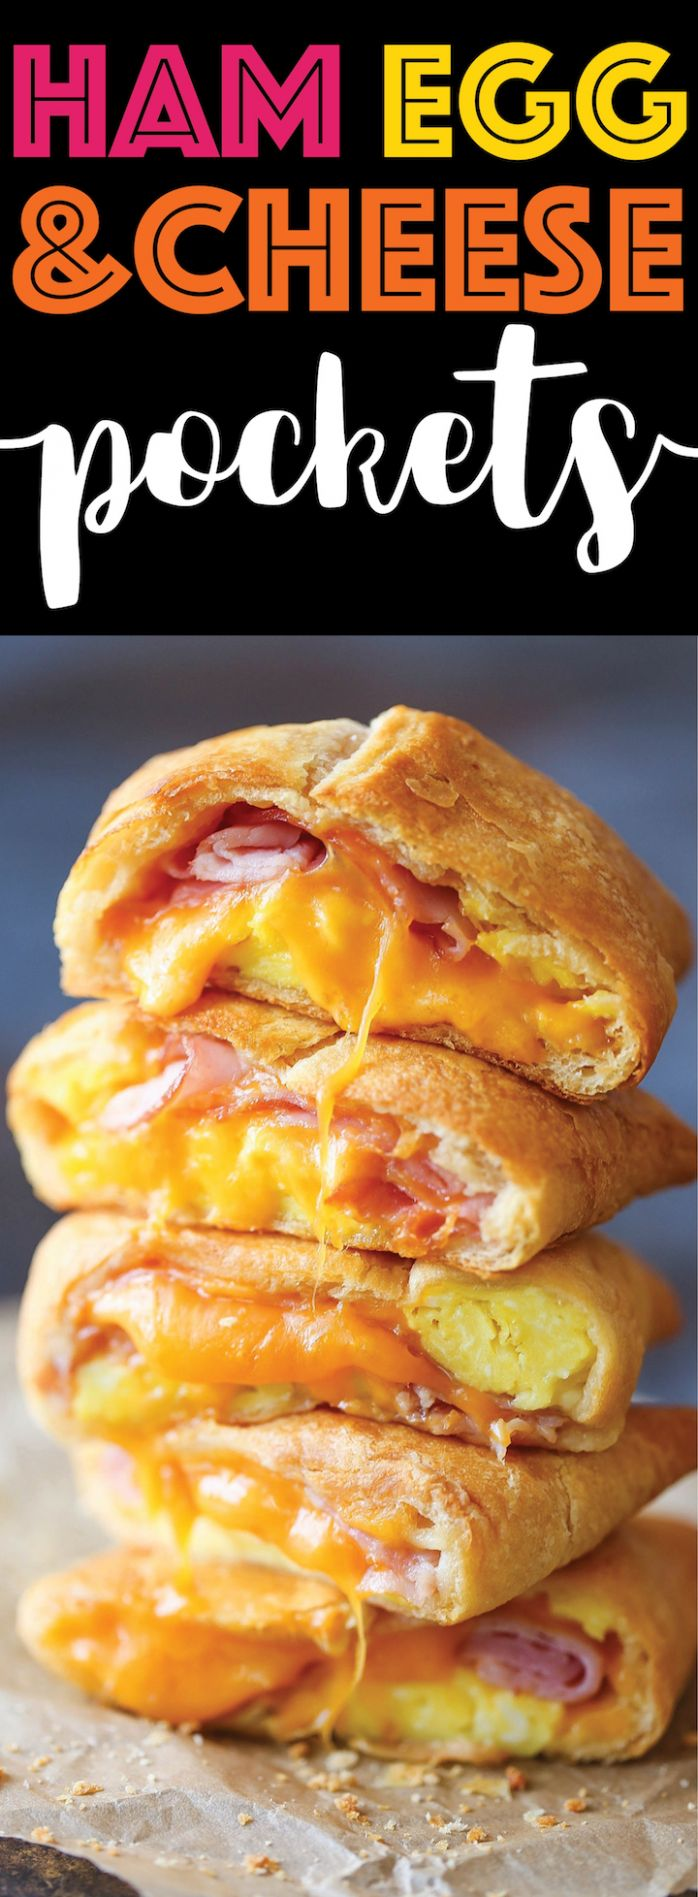 Ham Egg and Cheese Pockets - Breakfast Recipes Easy To Make